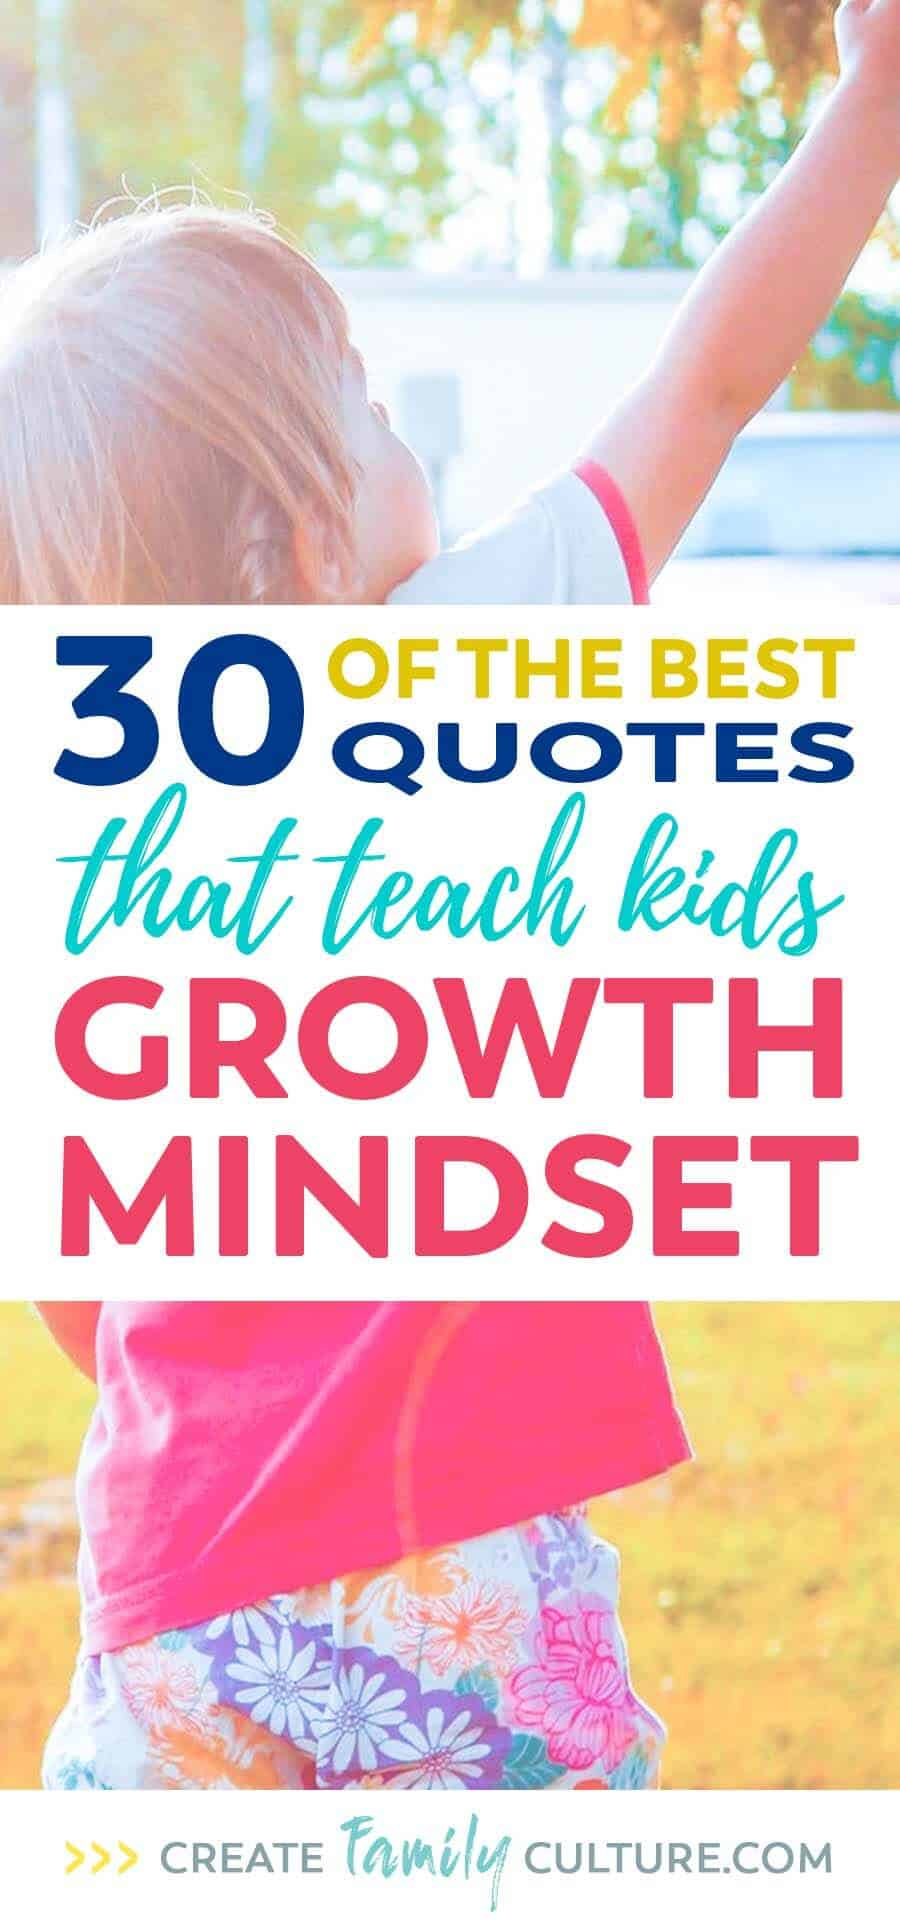 30 Inspiring Growth Mindset quotes for kids | Parenting Tips and Teaching Resources, Growth Mindset for Homeschool | Motivation for elementary school students | Free Printable